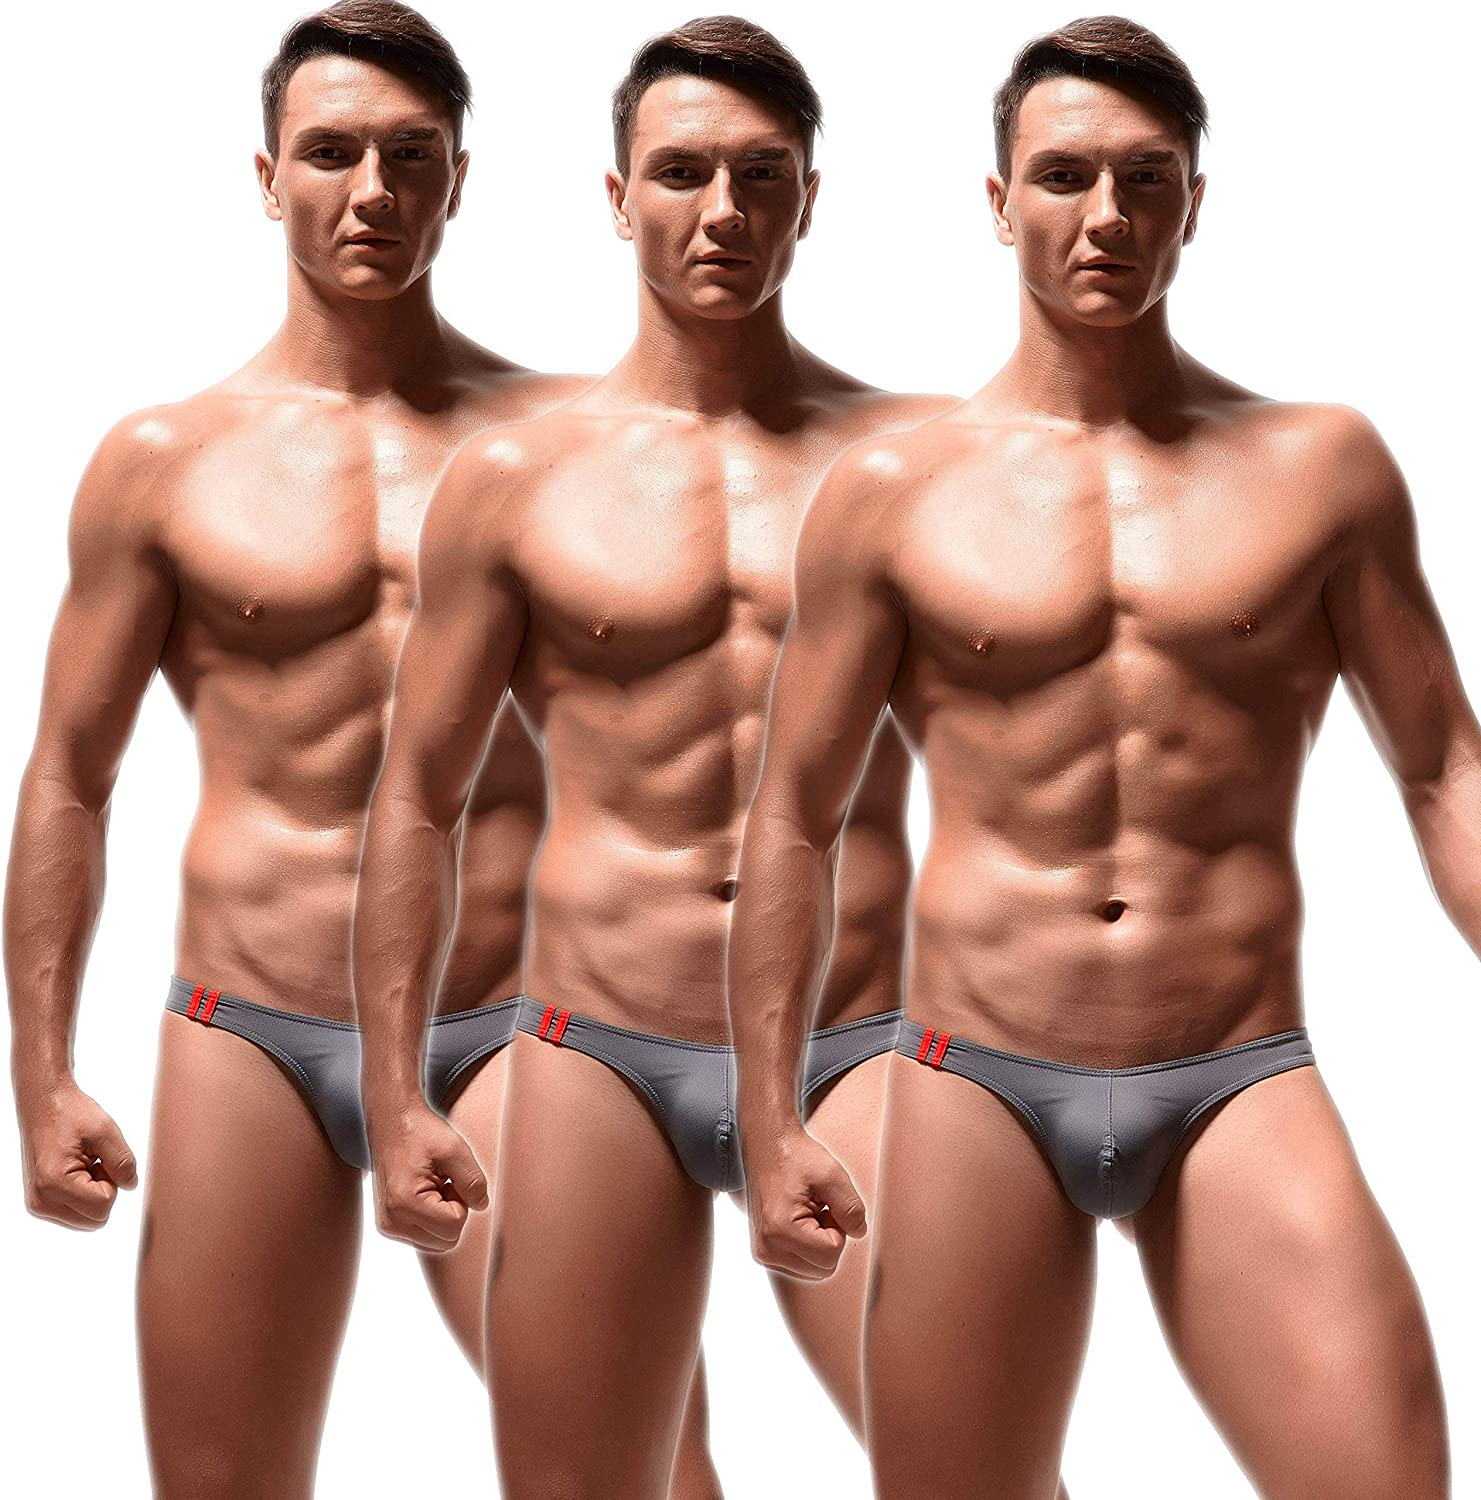 Newsywell Men's Multipack Low Rise T Back Discount is Ranking TOP20 also underway Breathable Bikin Thong